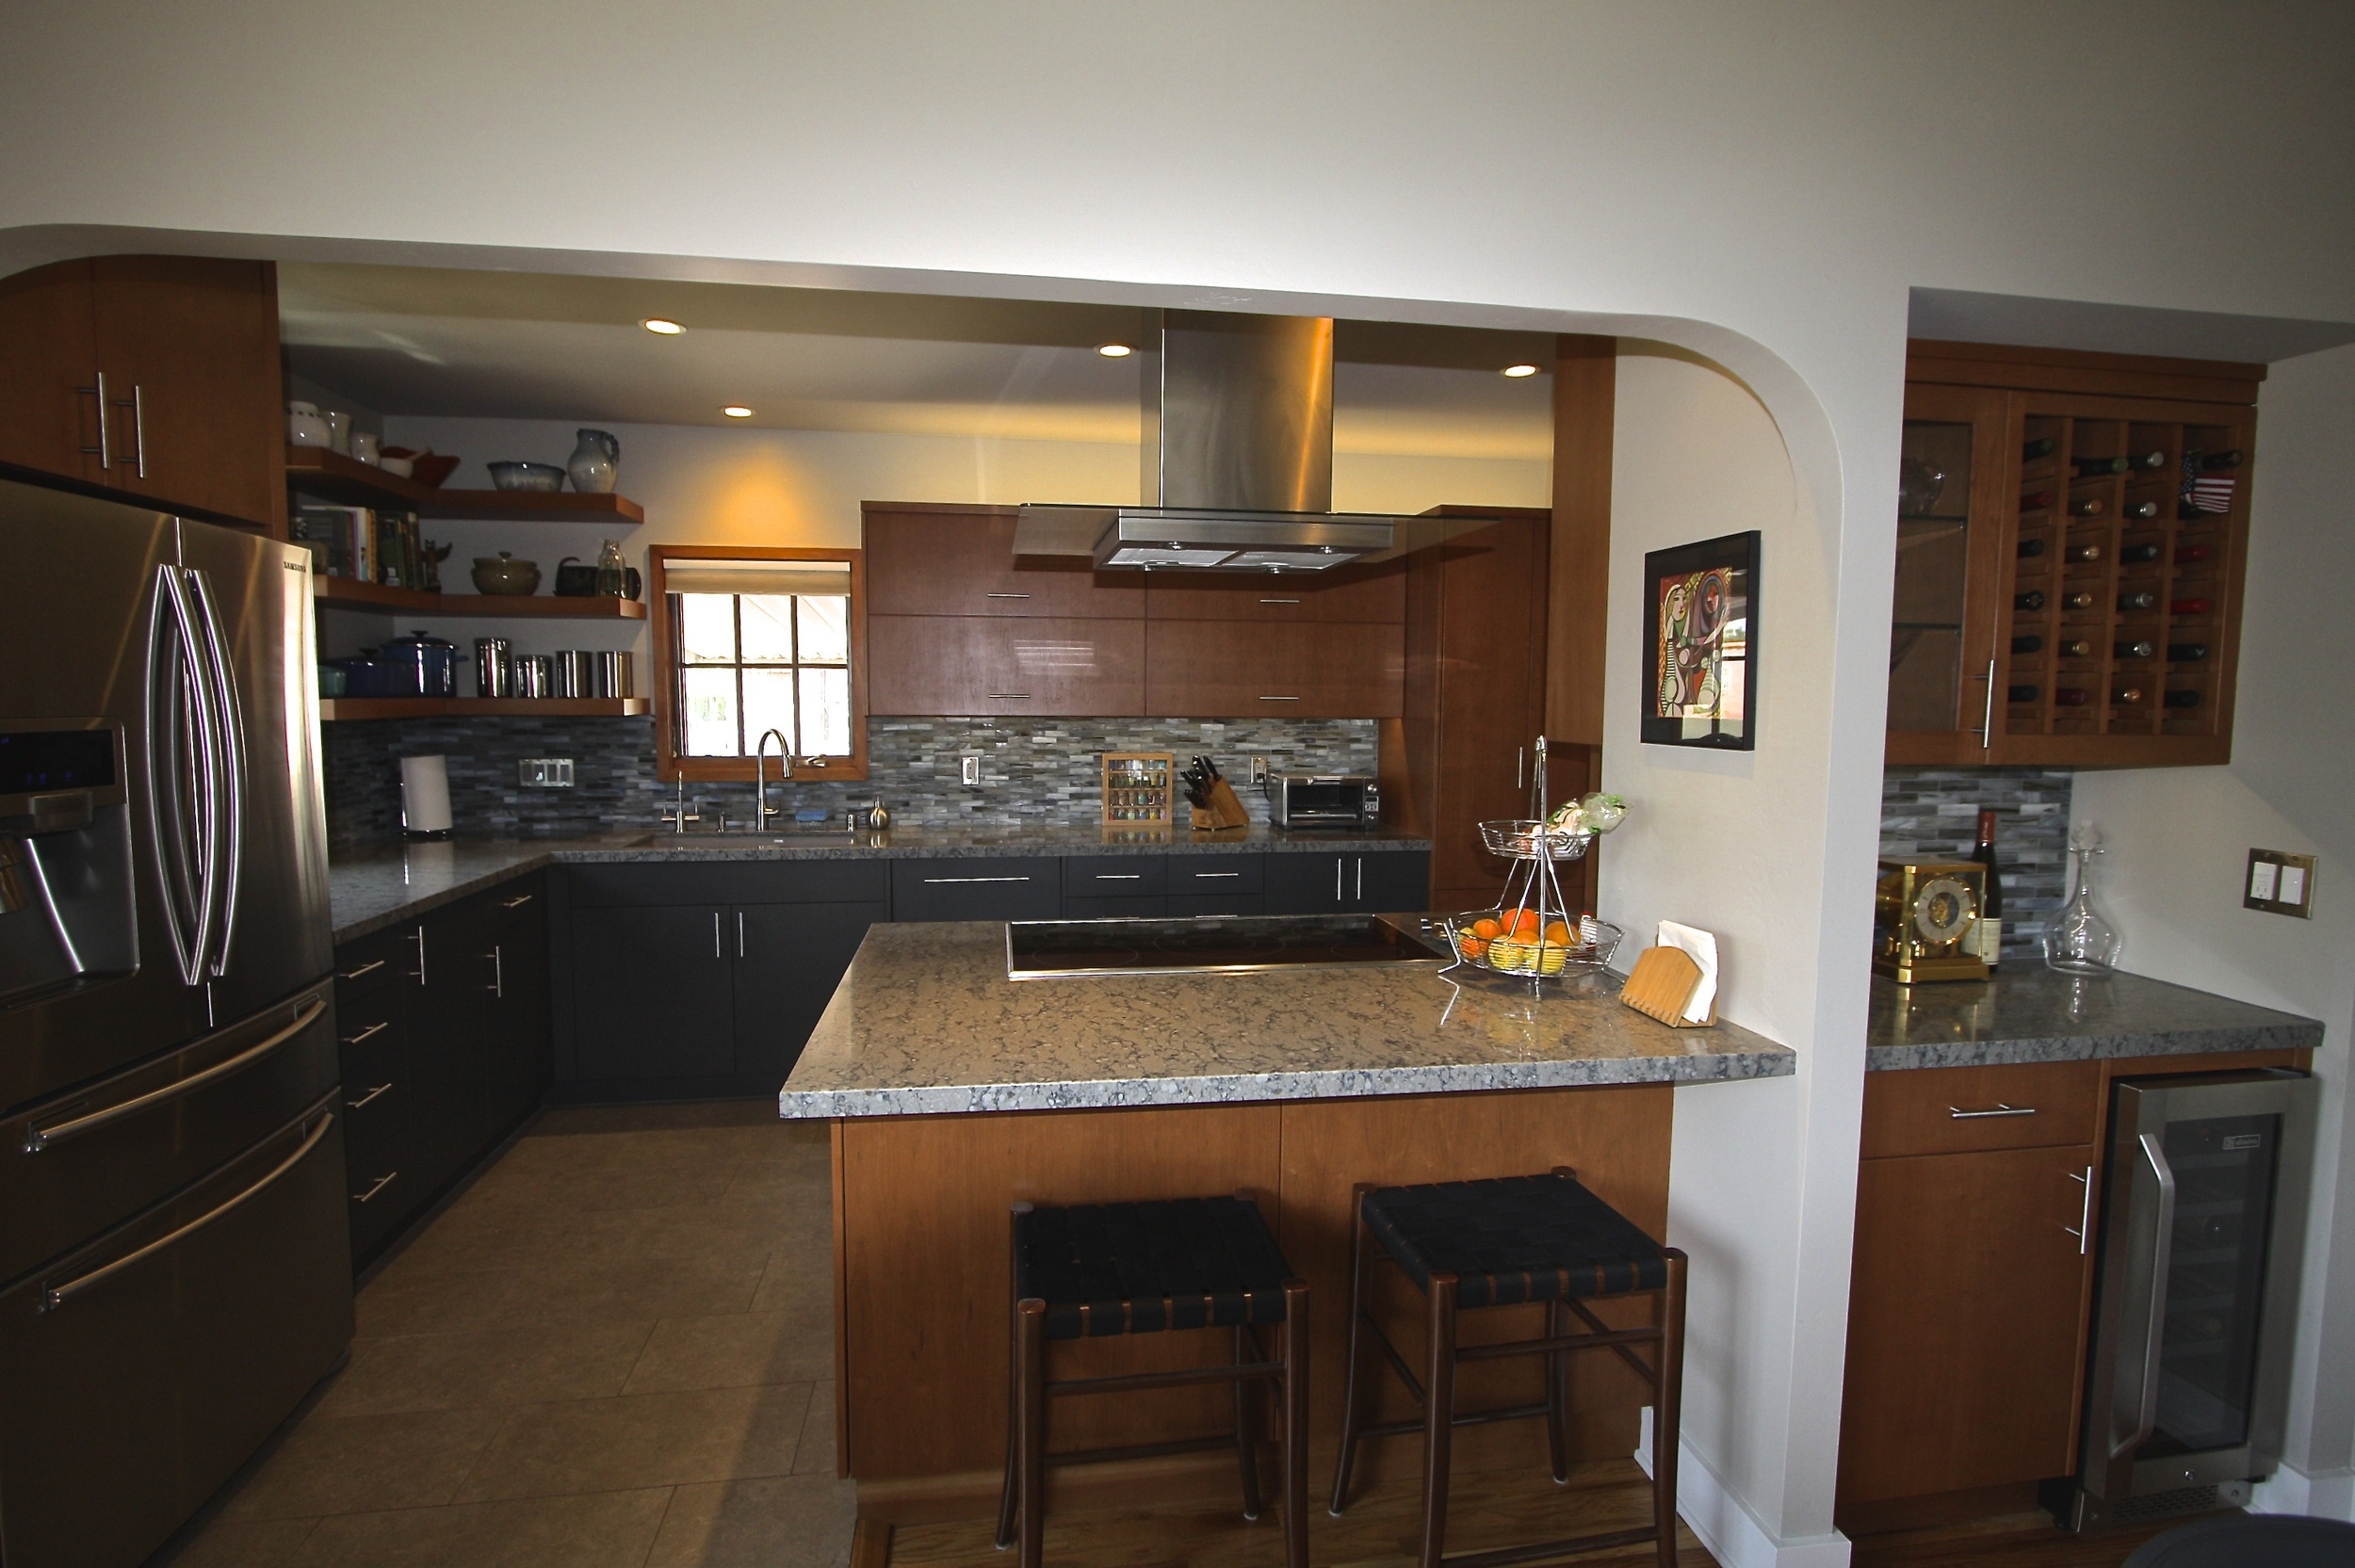 After: The owners both love to cook and bake and they built their dream kitchen to do it in.